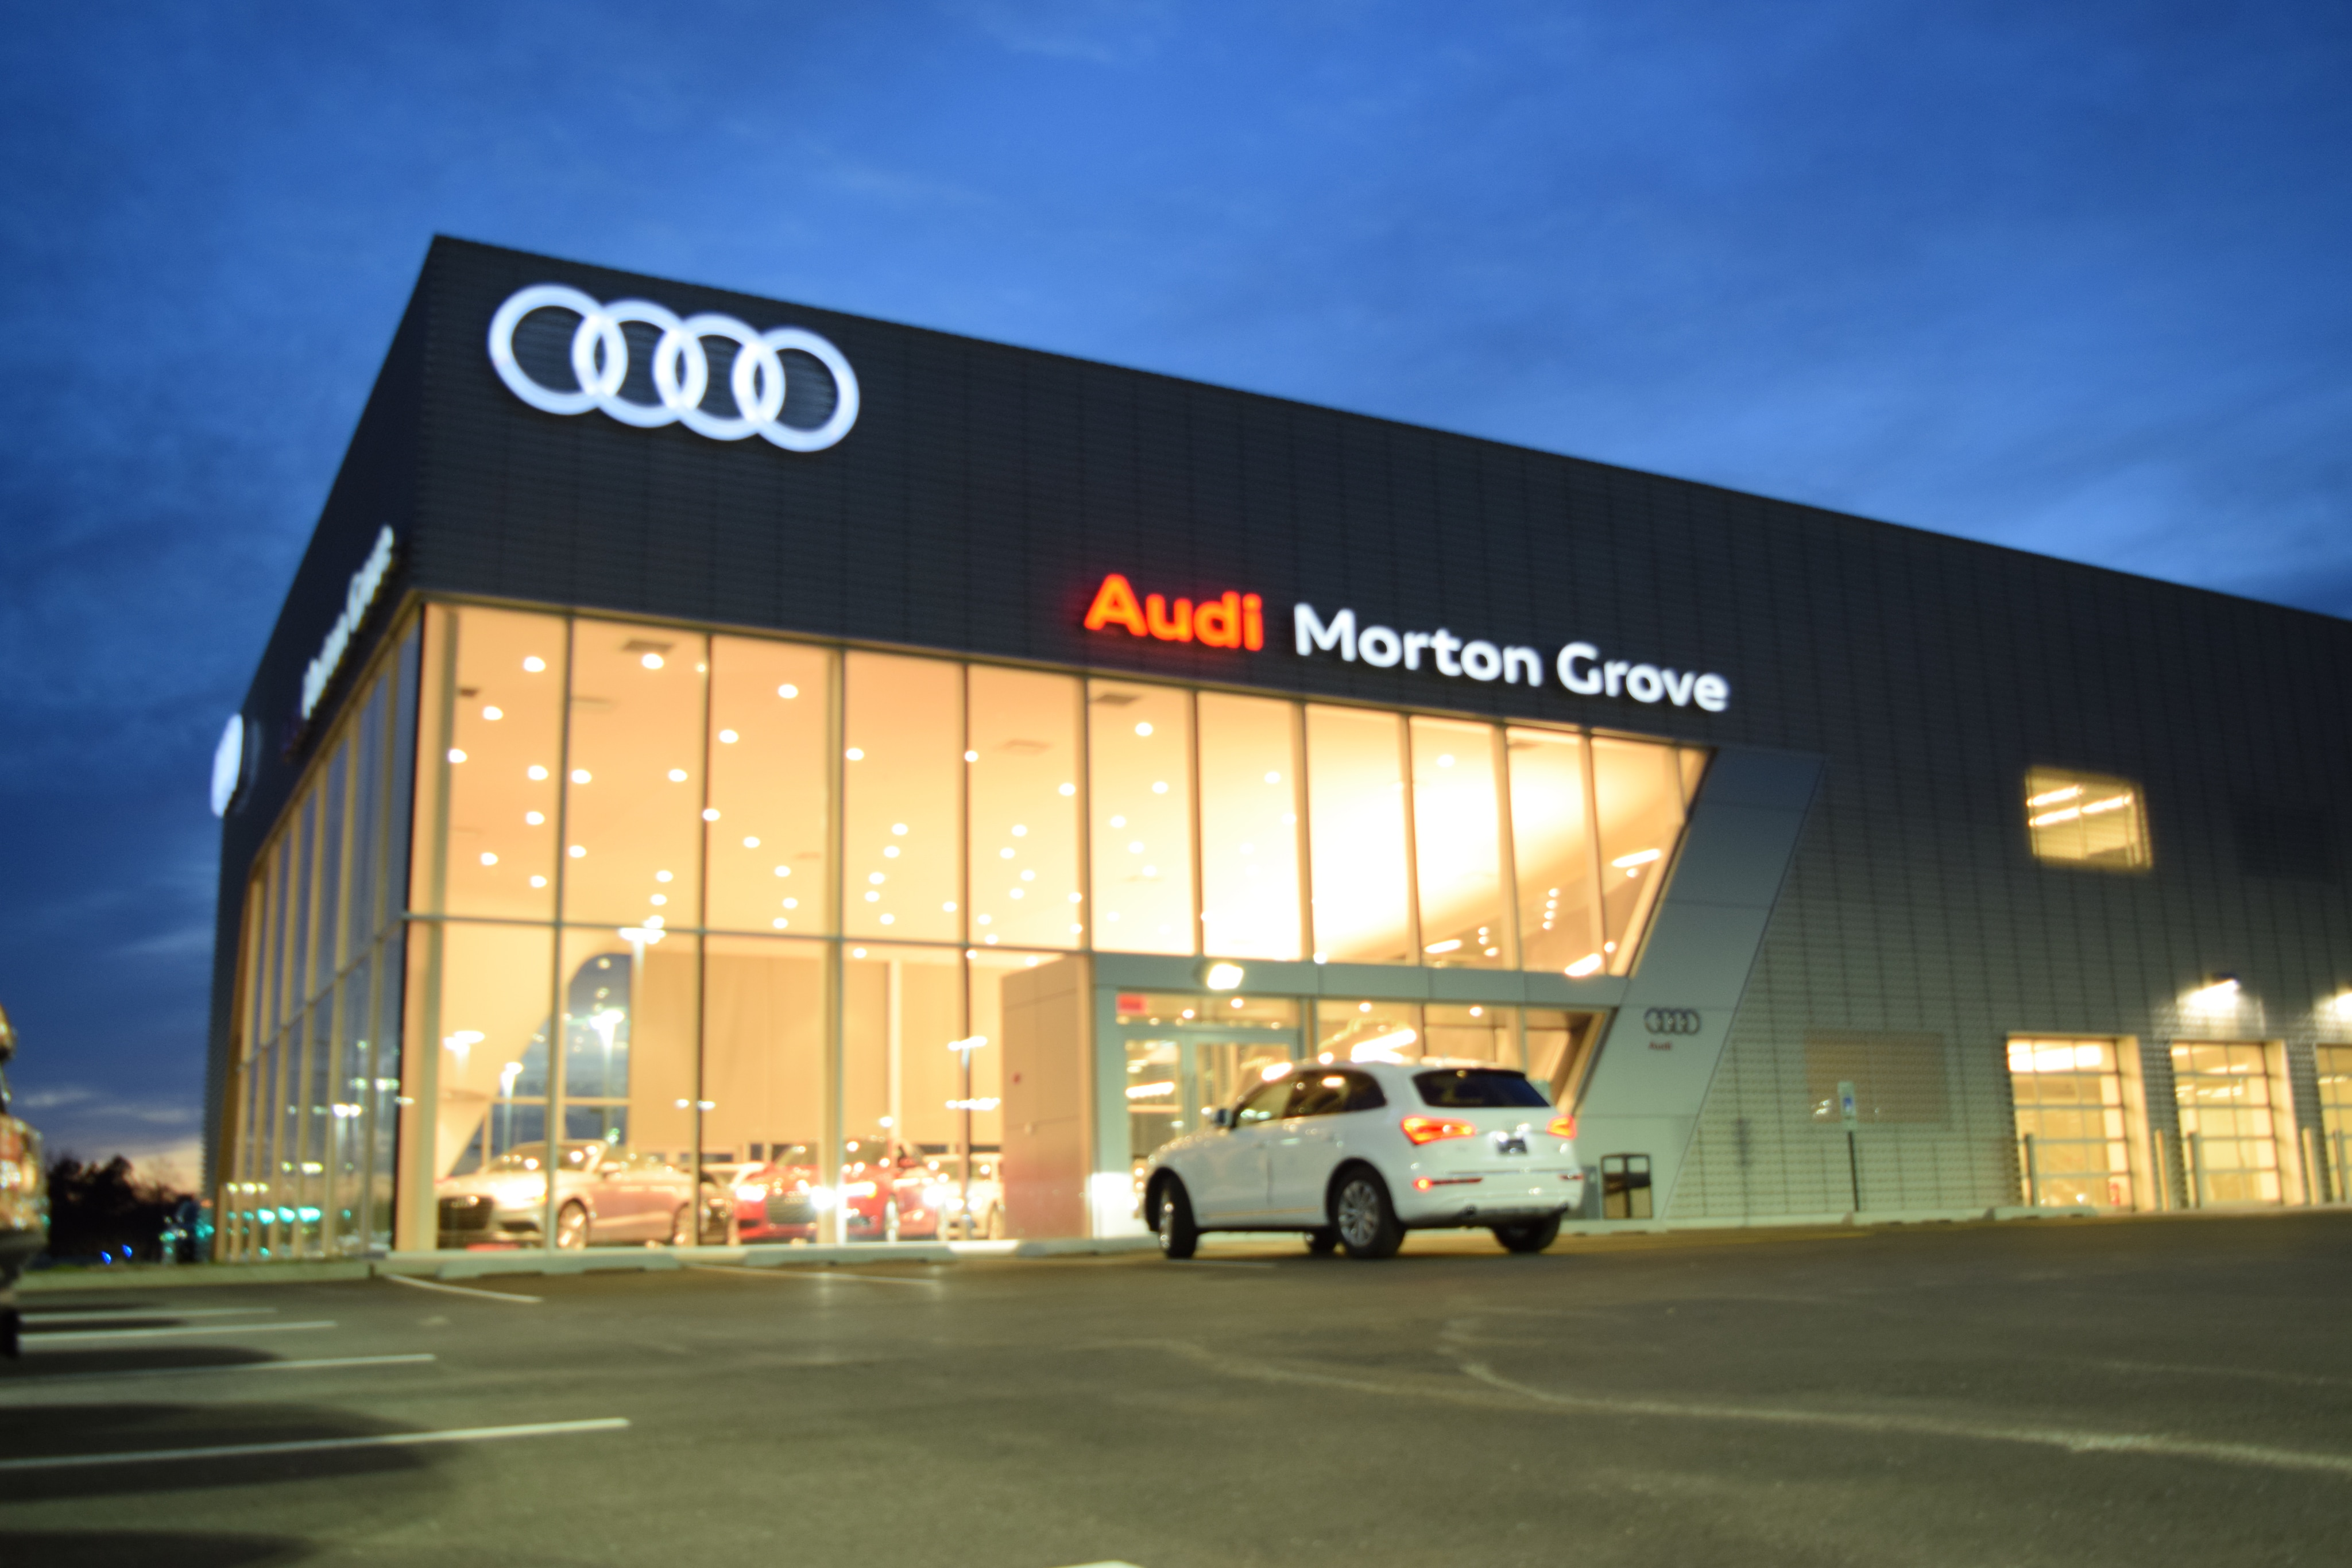 bmw dealership contractors international fields audi expansion and firm construction renovation chicago northfield inc